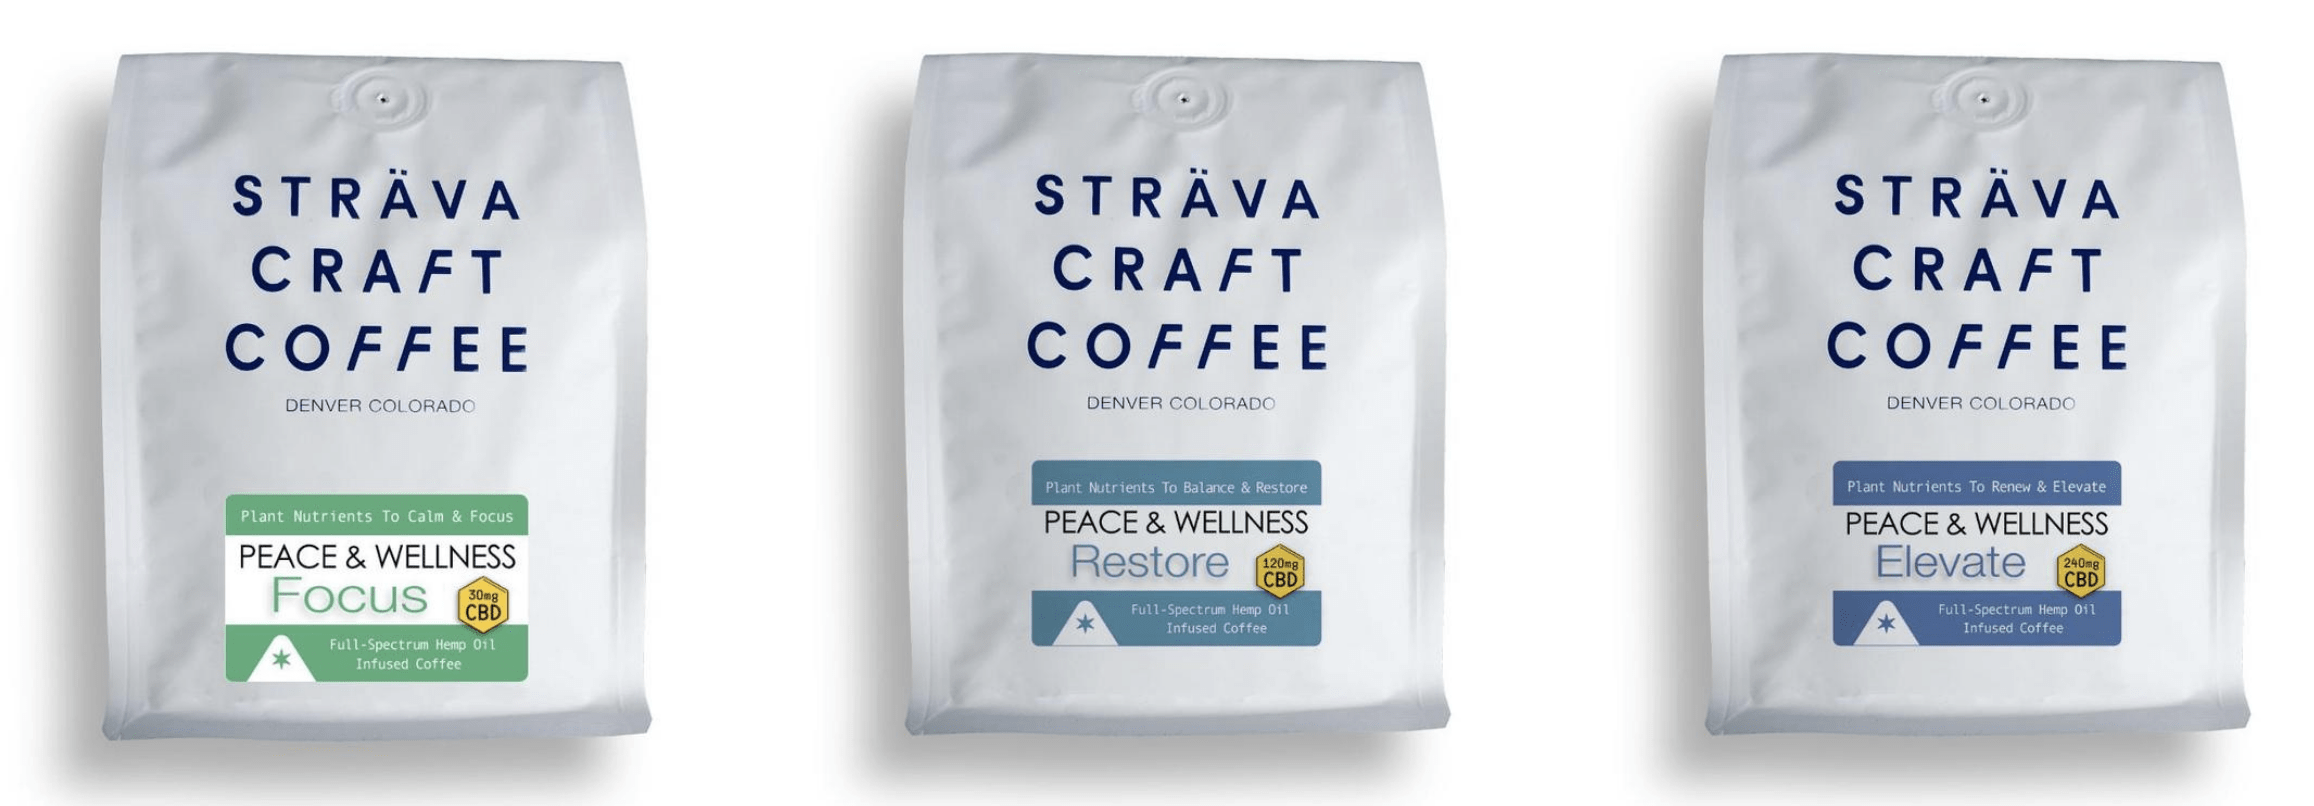 Strava Craft Coffee coupon codes! CBD coffee online.